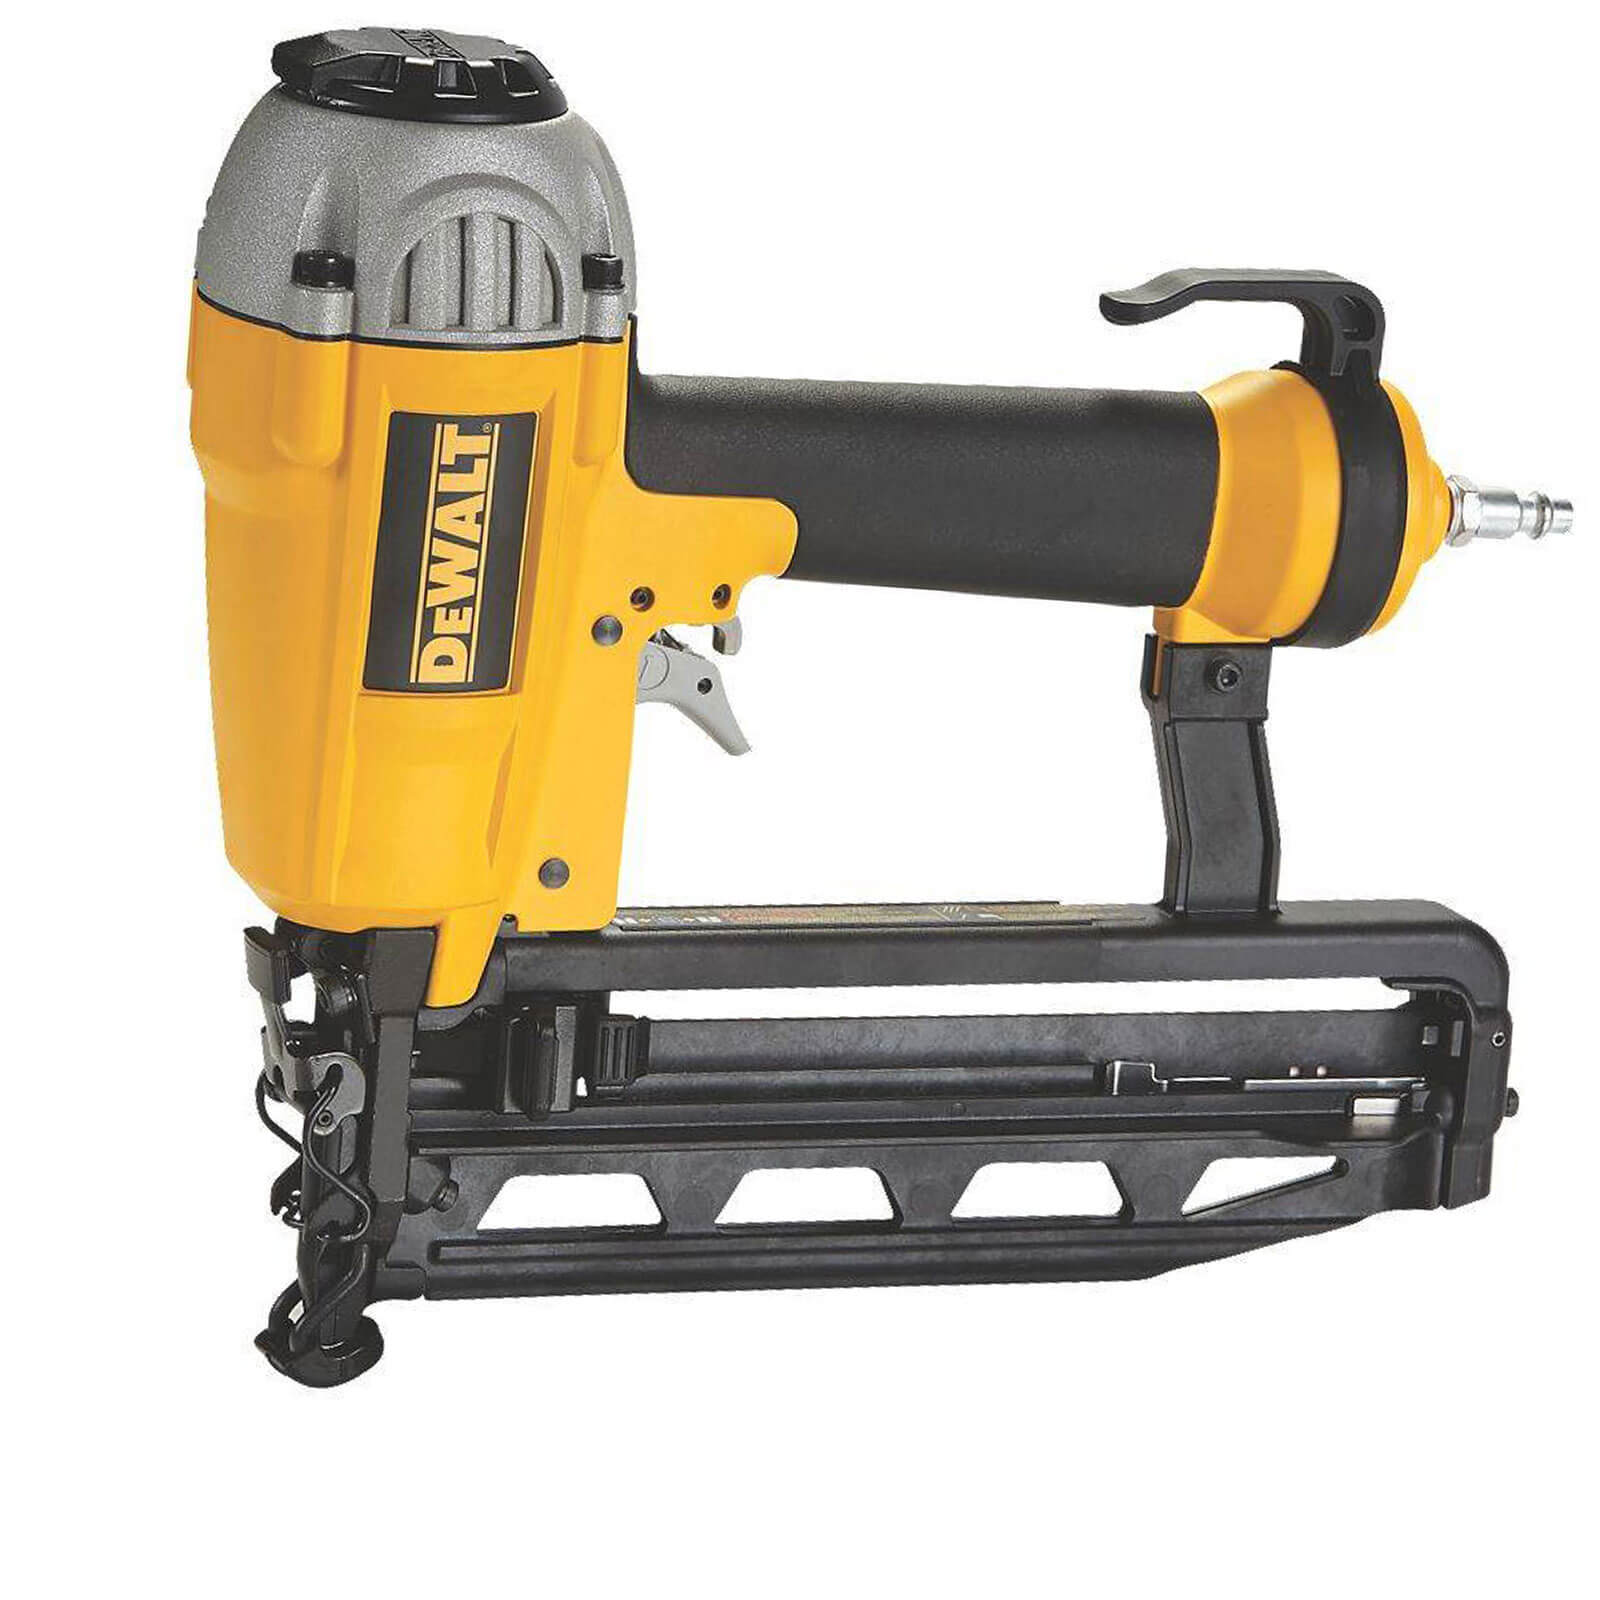 Image of DeWalt DPN1664 16 Gauge Finish Air Nail Gun